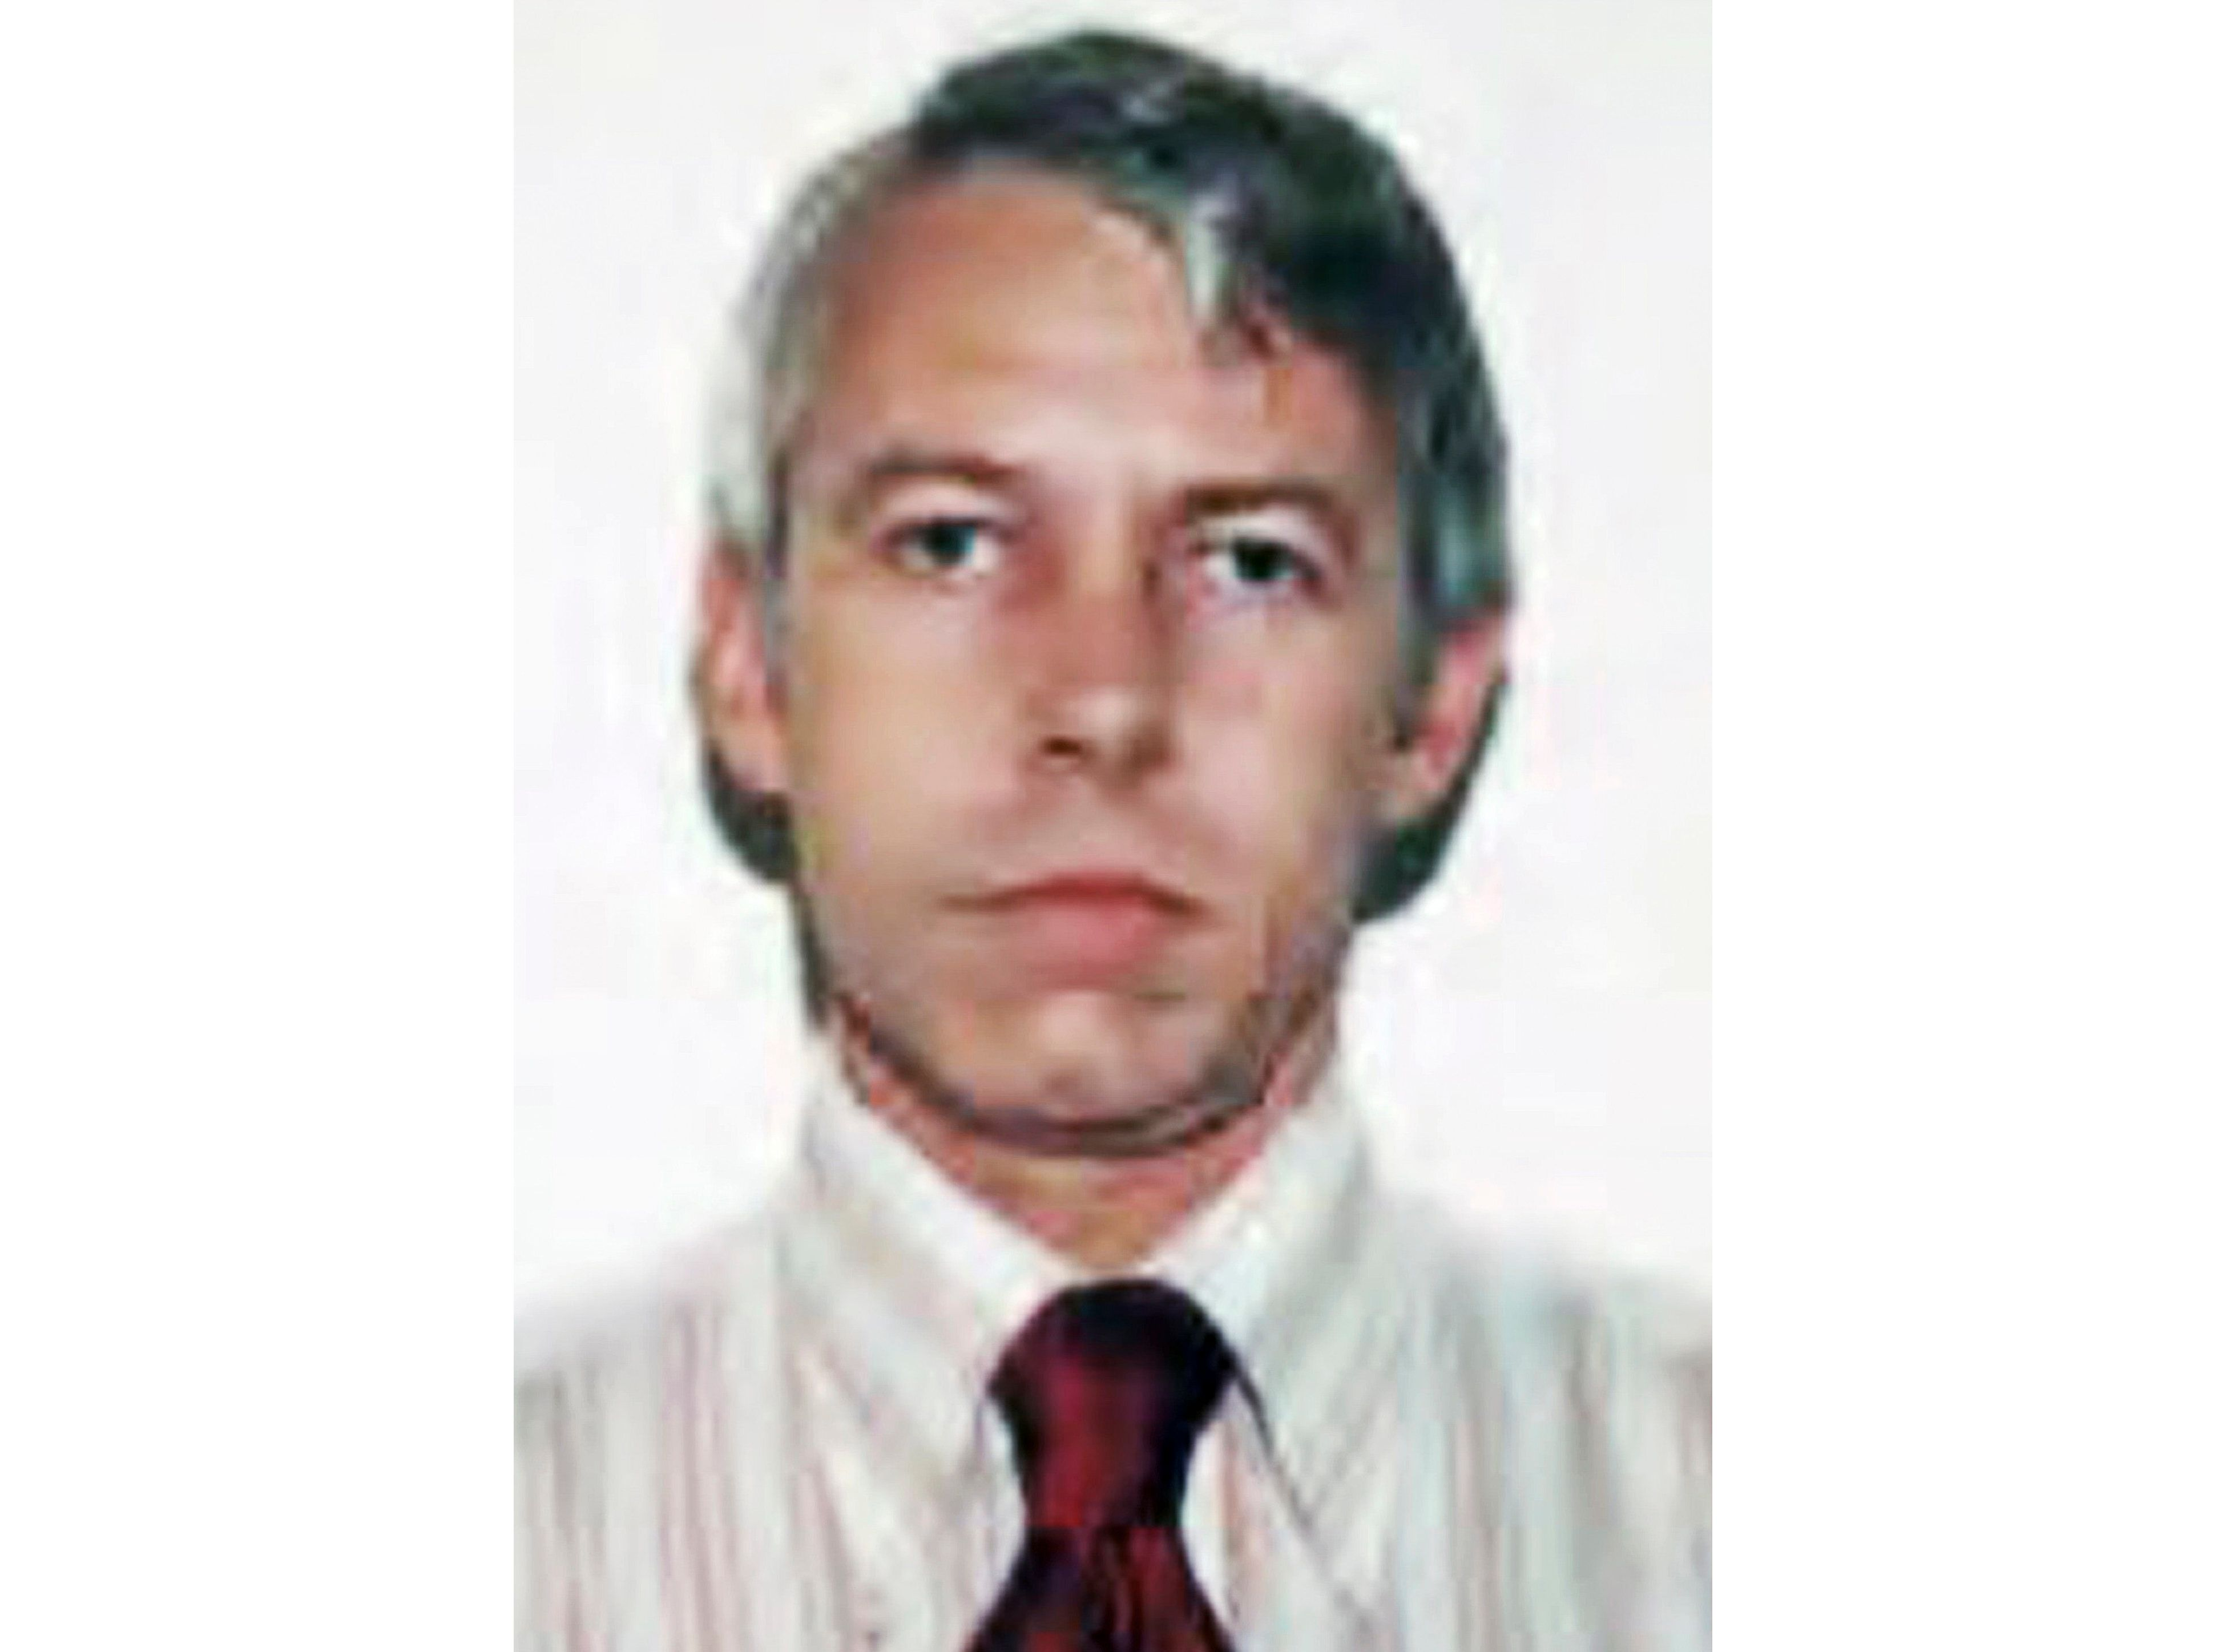 Investigators say Dr. Richard Strauss sexually assaulted at least 177 students over two decades at Ohio State University.&nbs